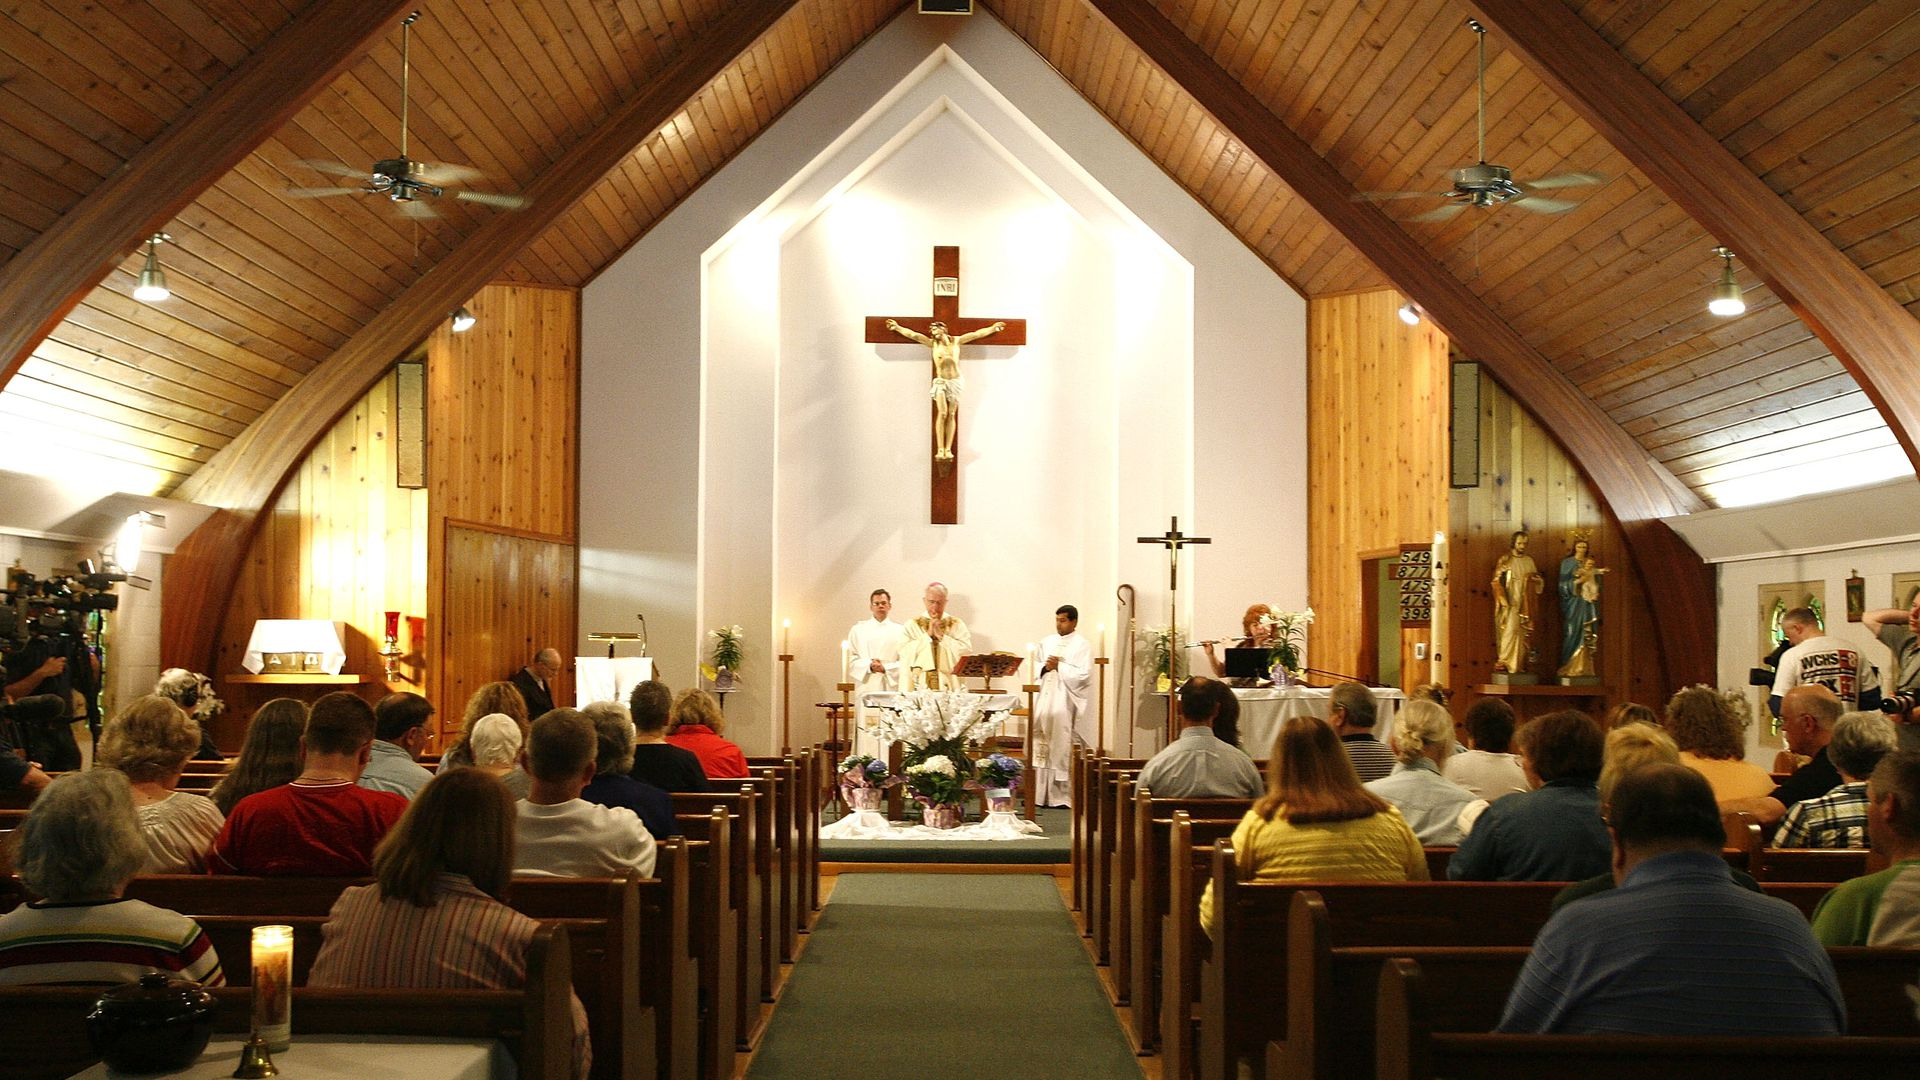 In this image, two rows of pews in a church are packed as church goers face a sermon being held in front of a white wall.